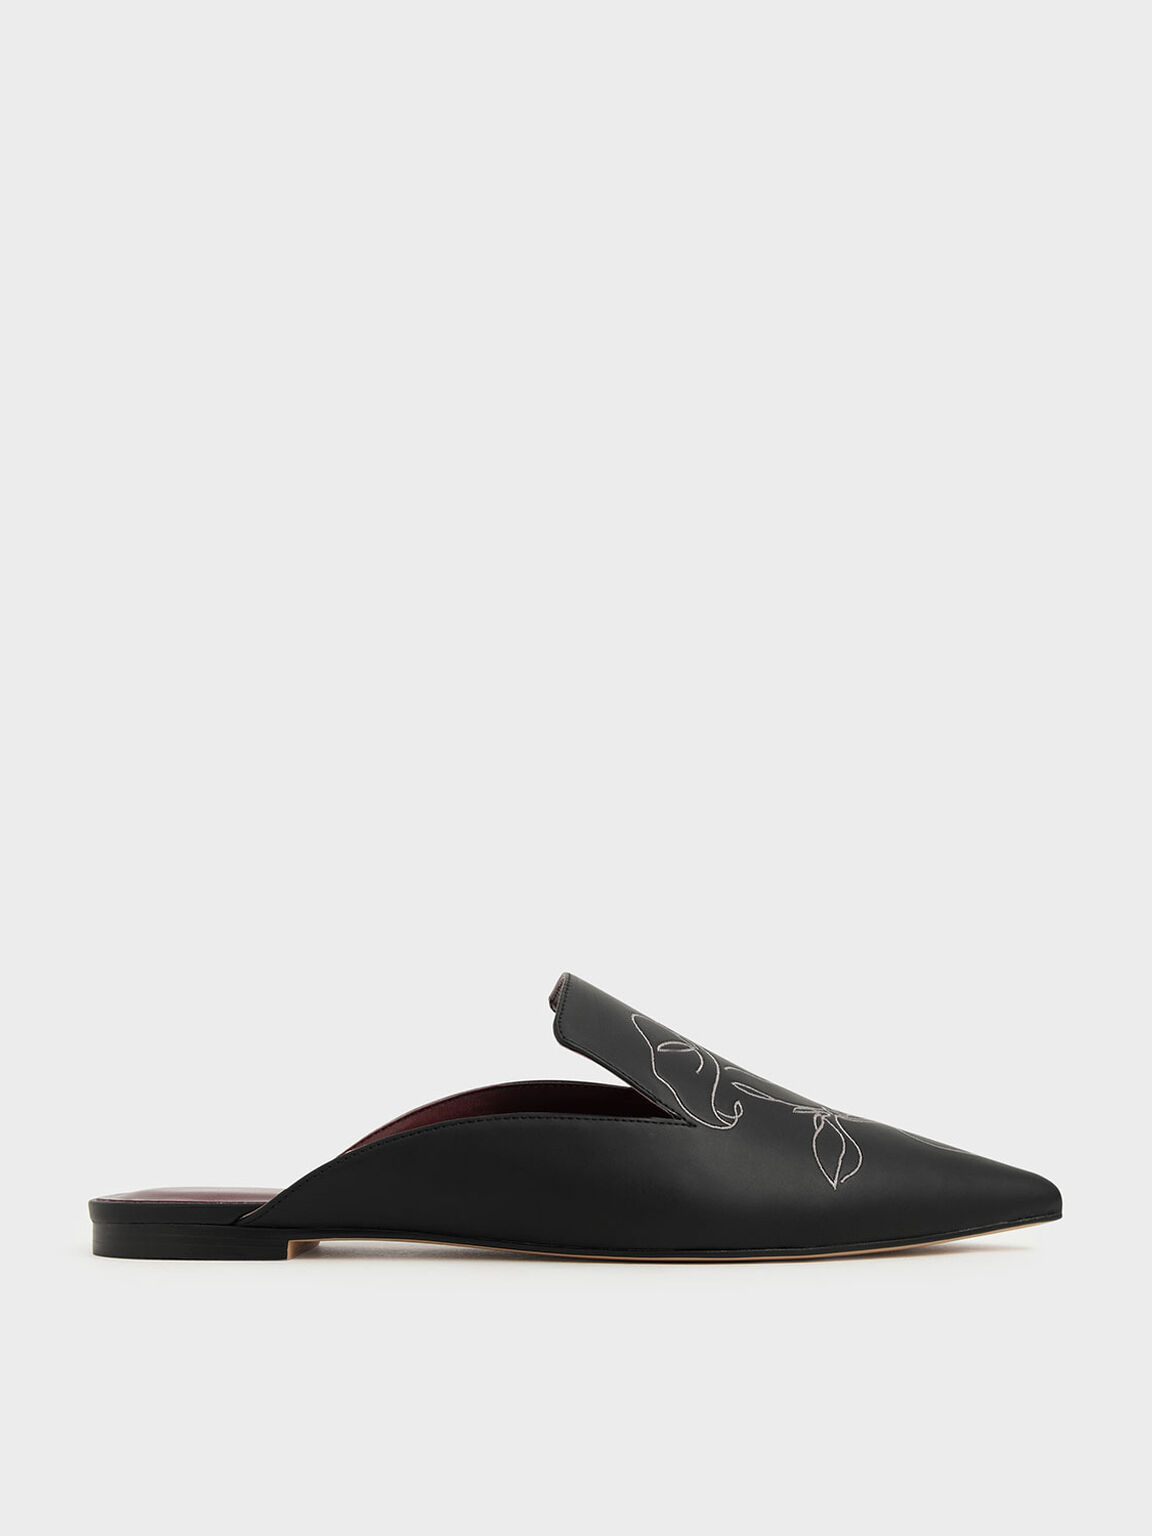 Floral Embroidered Pointed Toe Mules, Black, hi-res